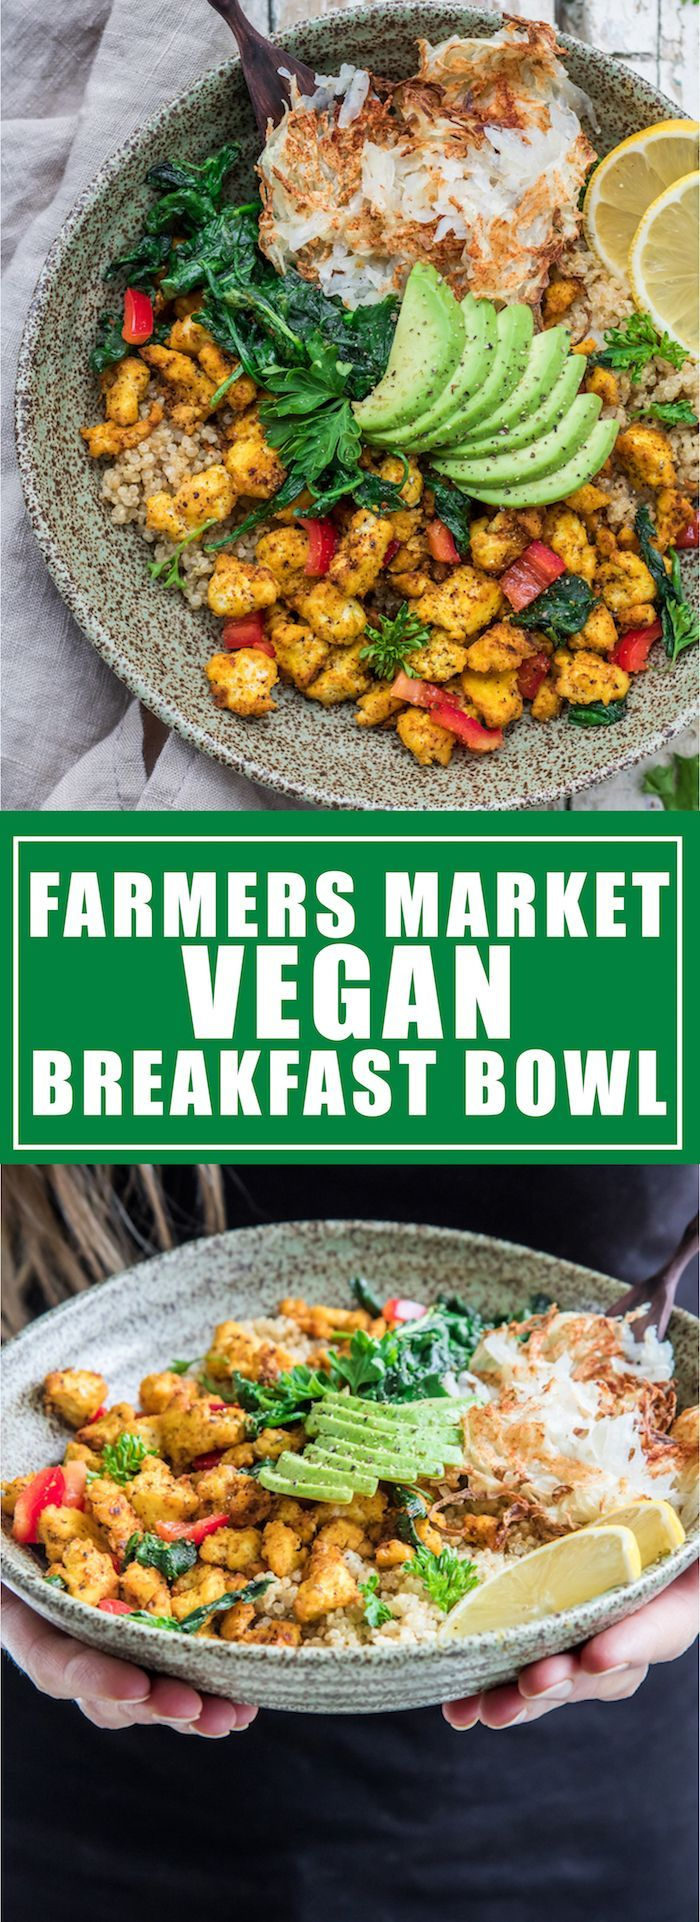 This vegan breakfast bowl is loaded with scrambled tofu, quinoa, hash browns, and fresh market veggies. It's delicious!